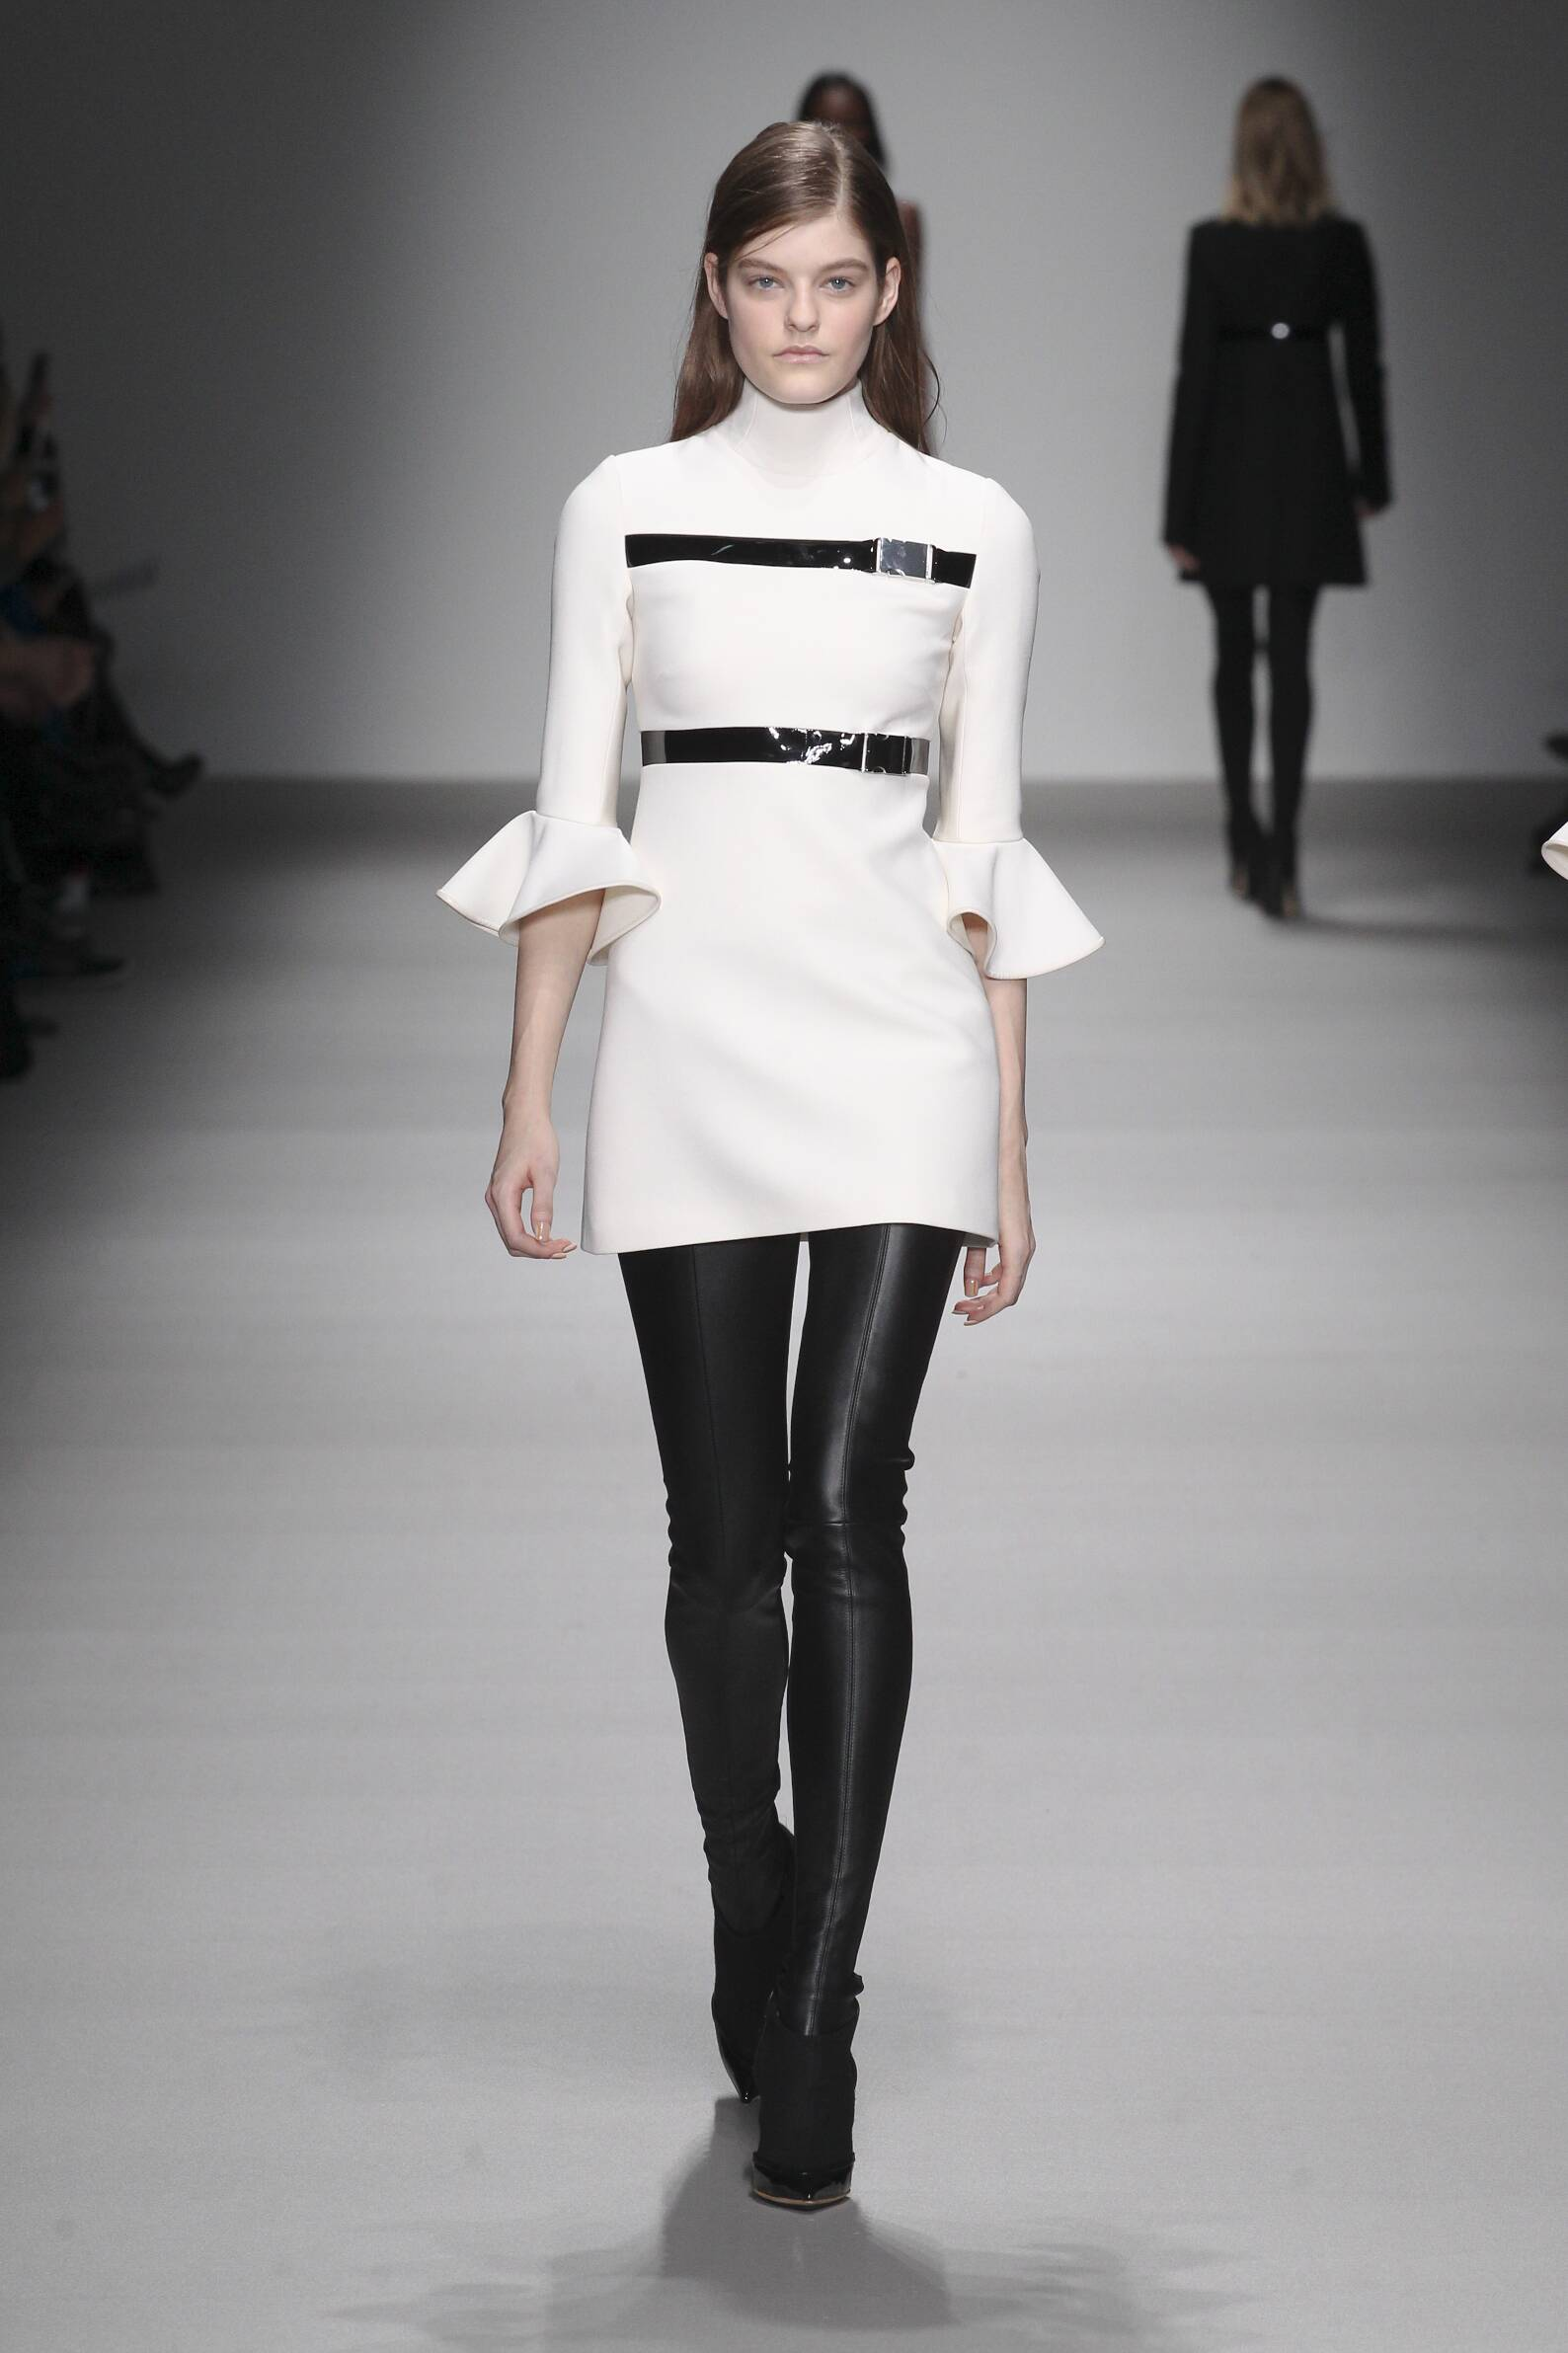 Runway David Koma Fall Winter 2015 16 Women's Collection London Fashion Week